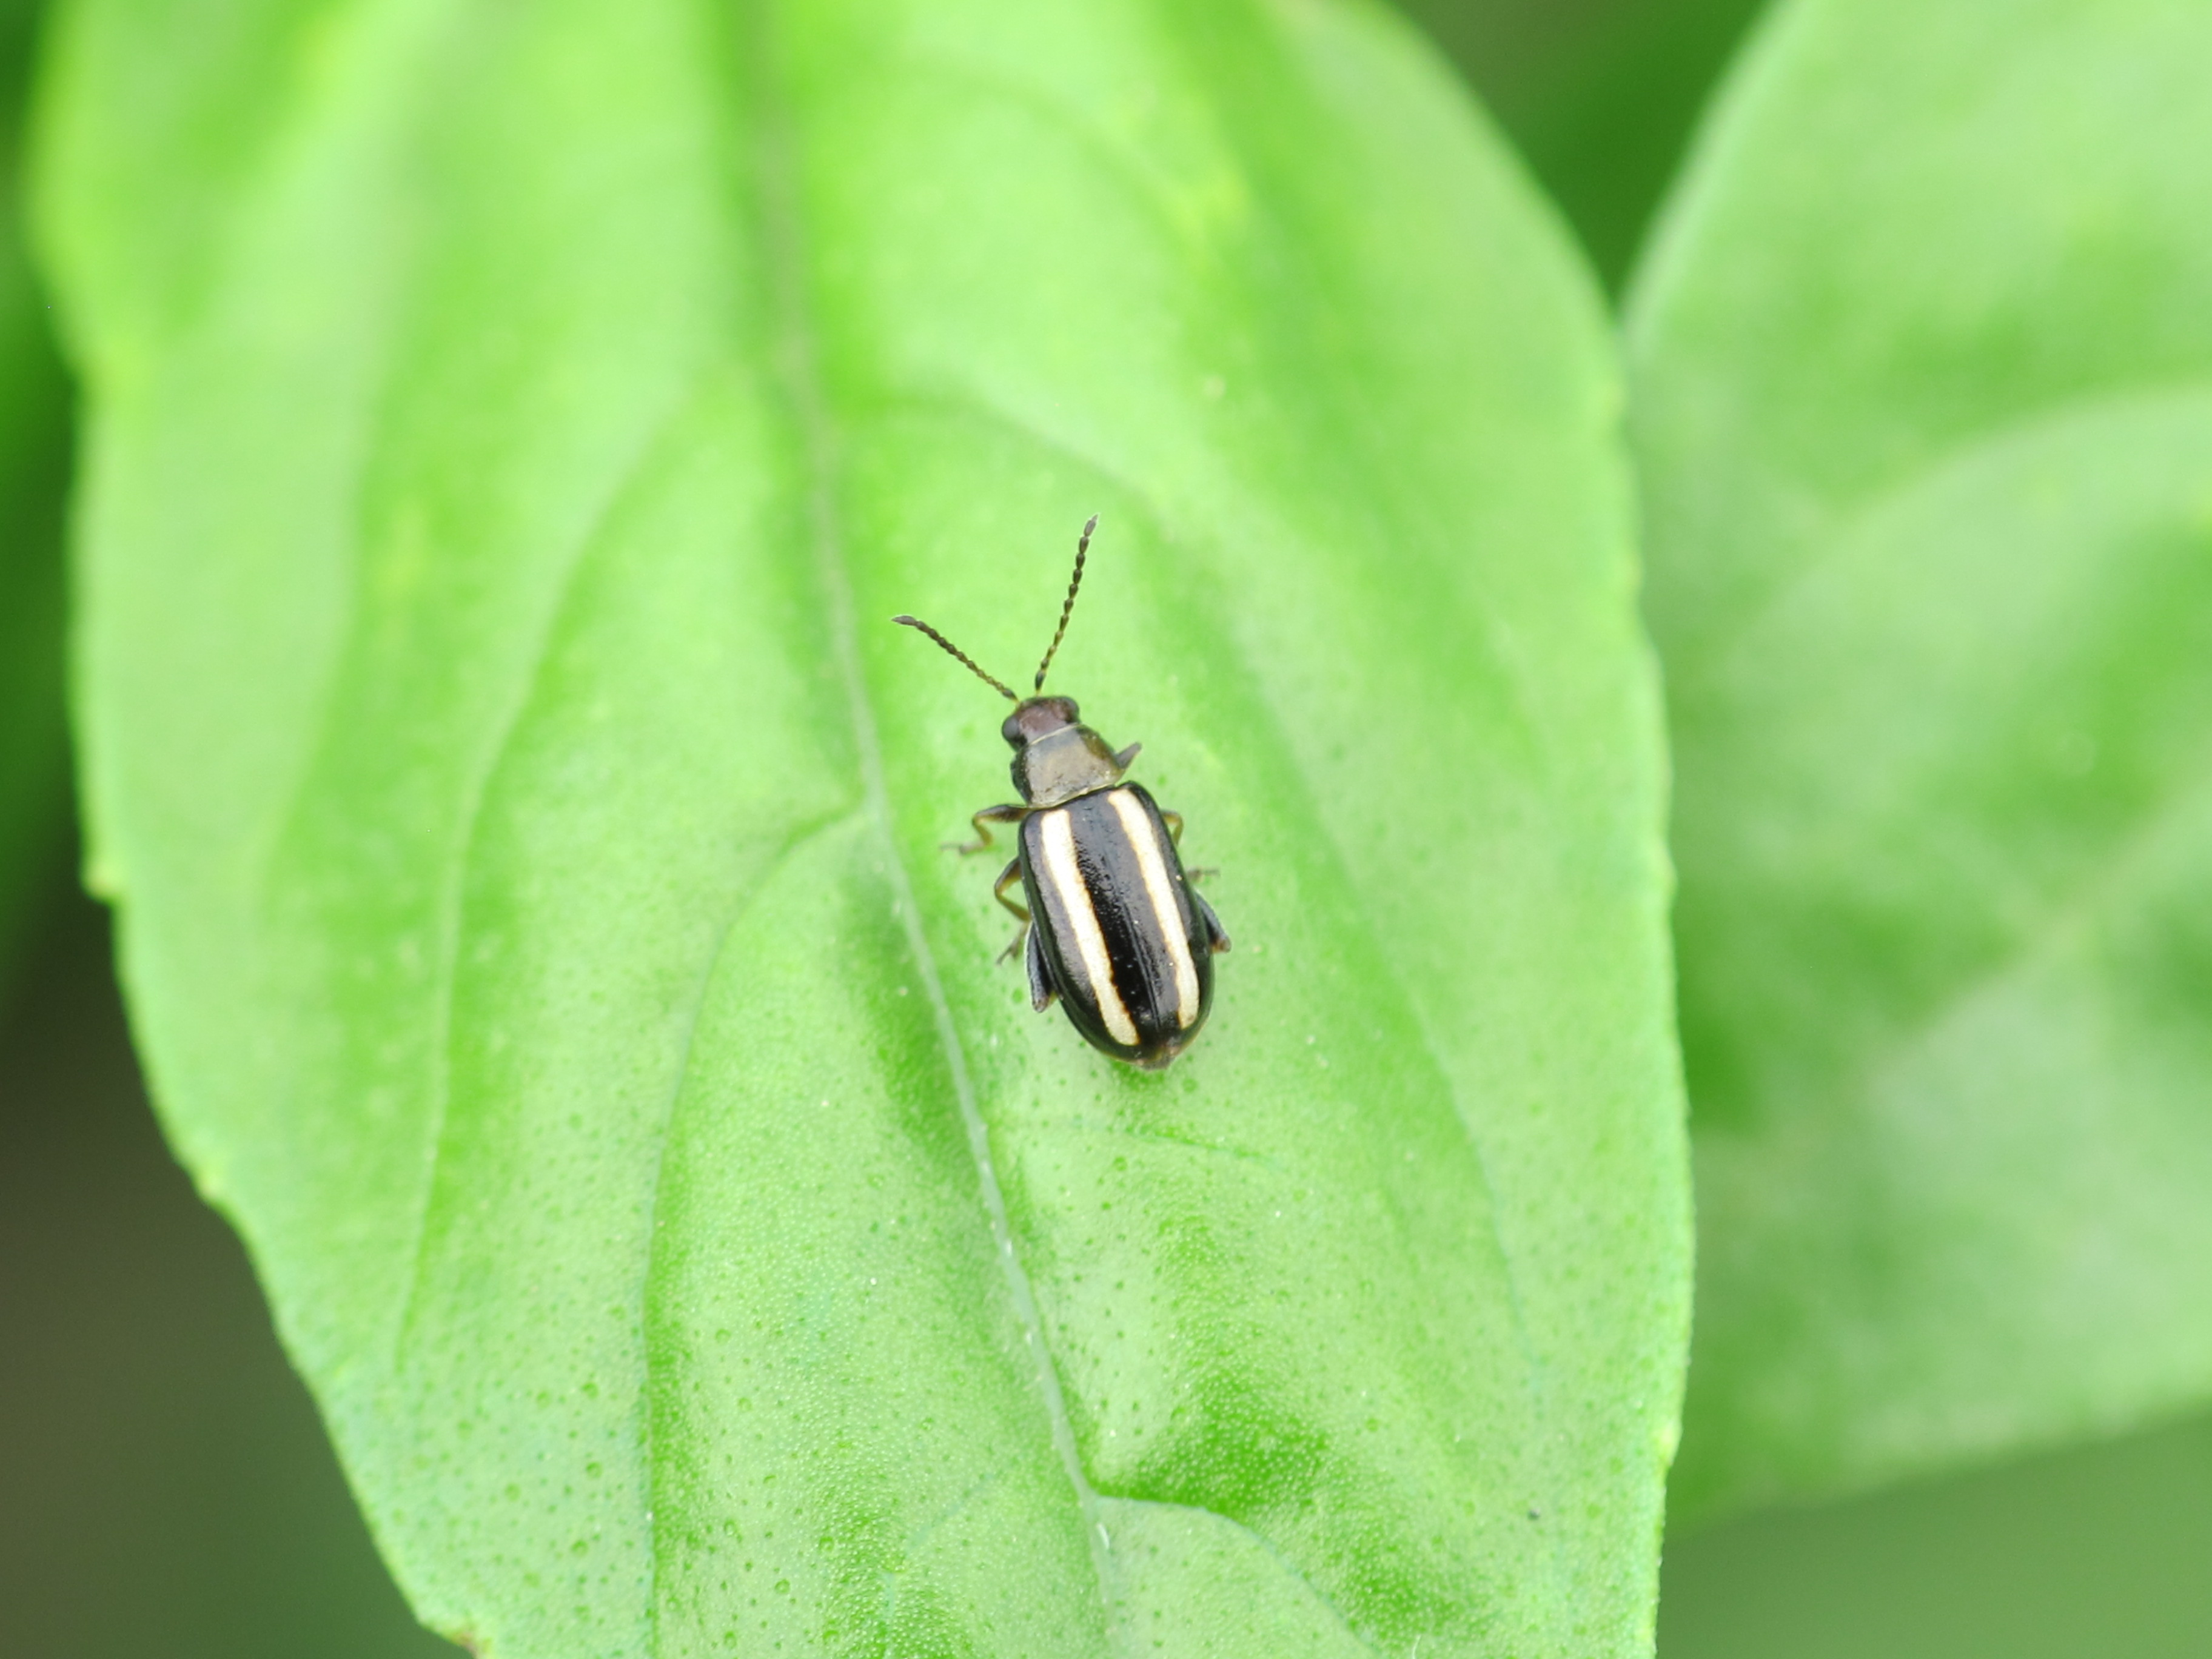 Some adult flea beetles are striped.